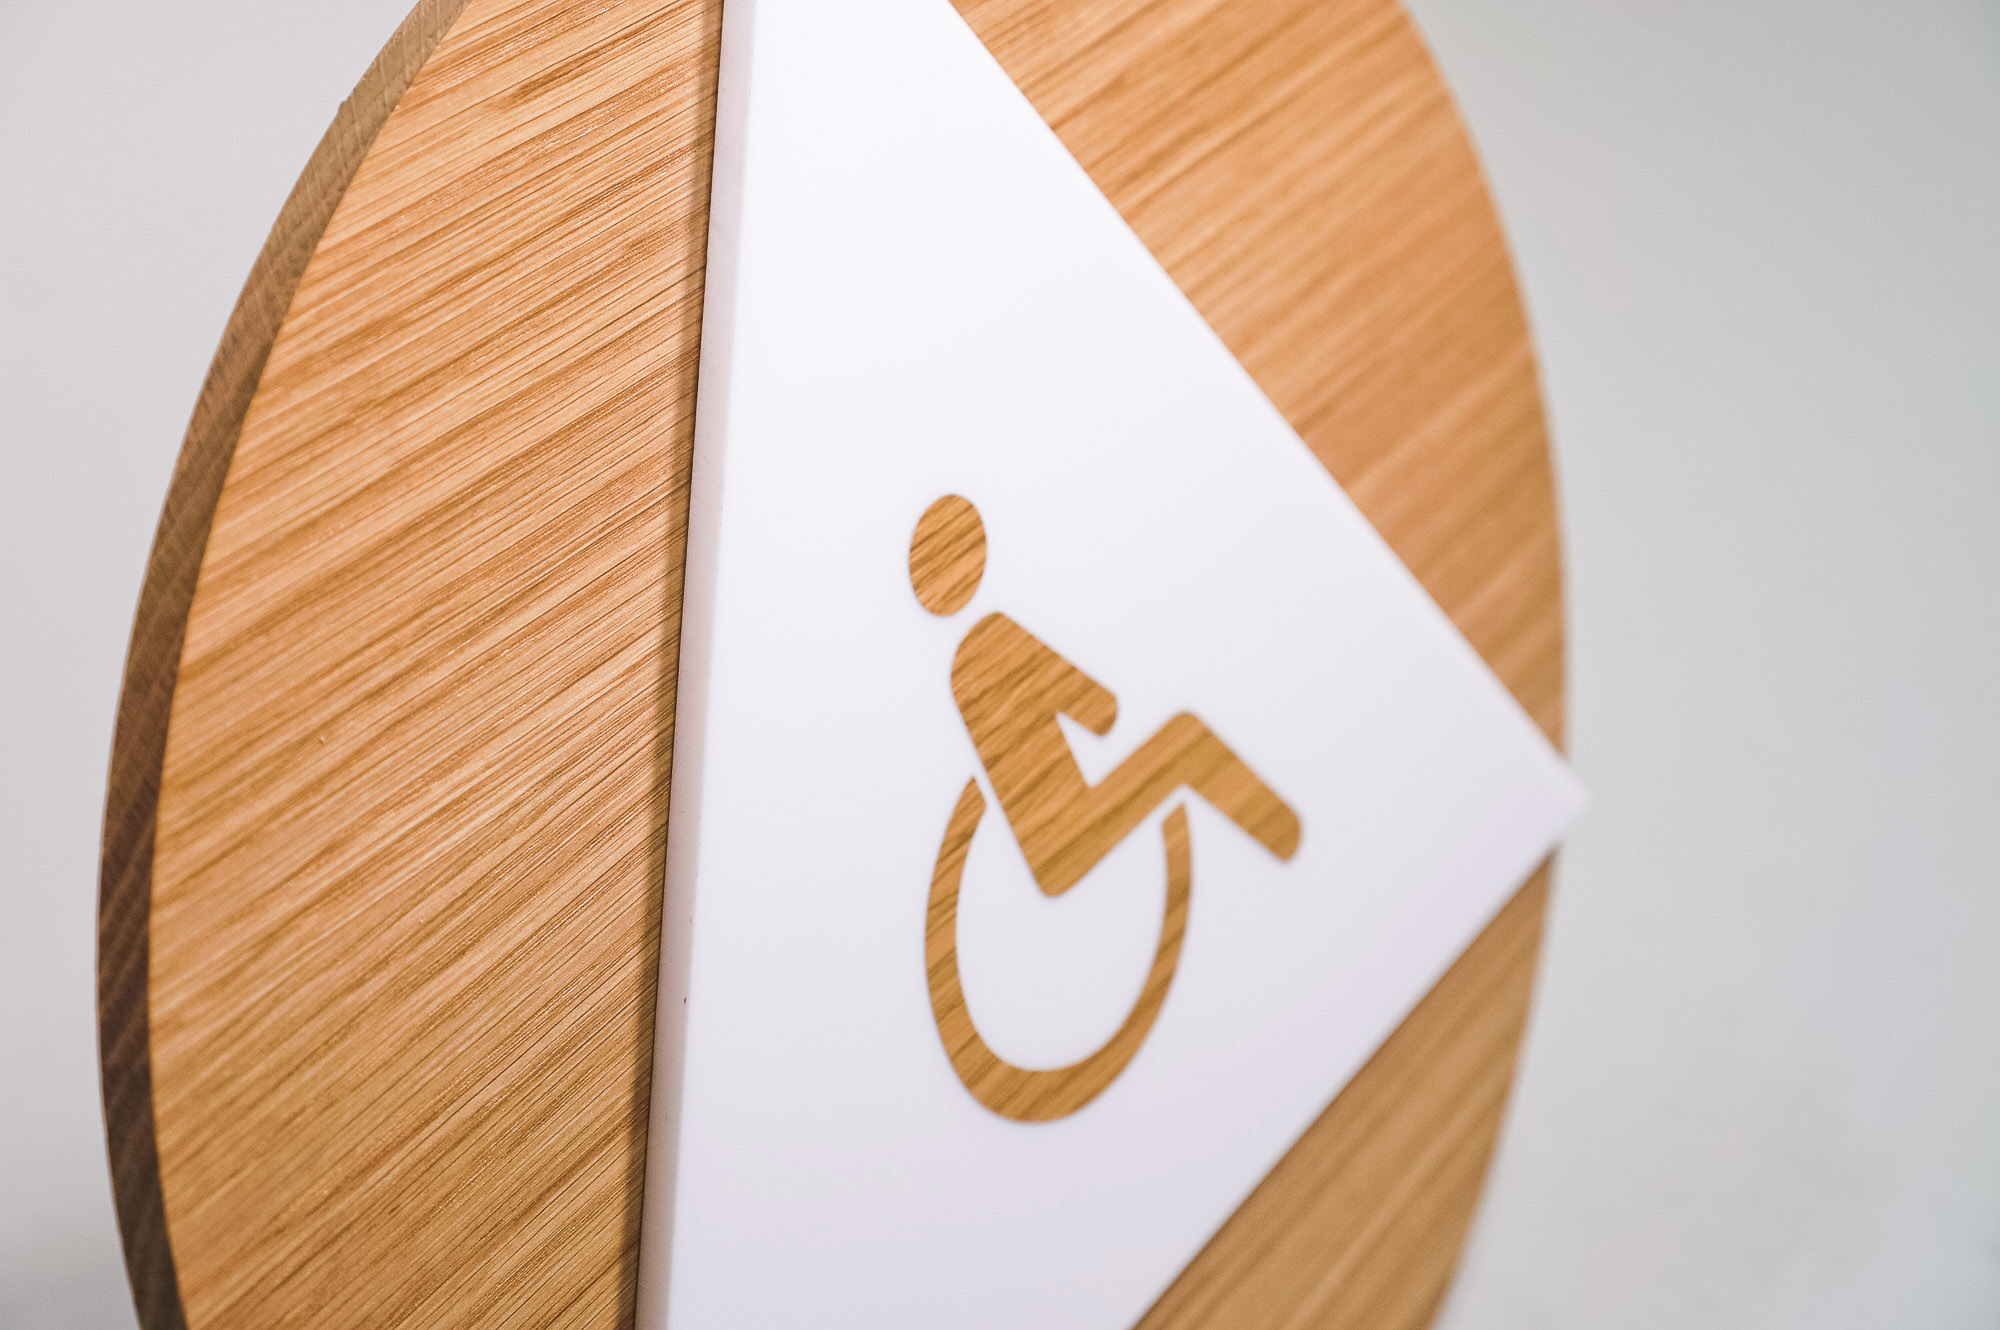 Modern light wood and white handicap ADA restroom signs for Slack, a cloud-based set of proprietary team collaboration tools and services.